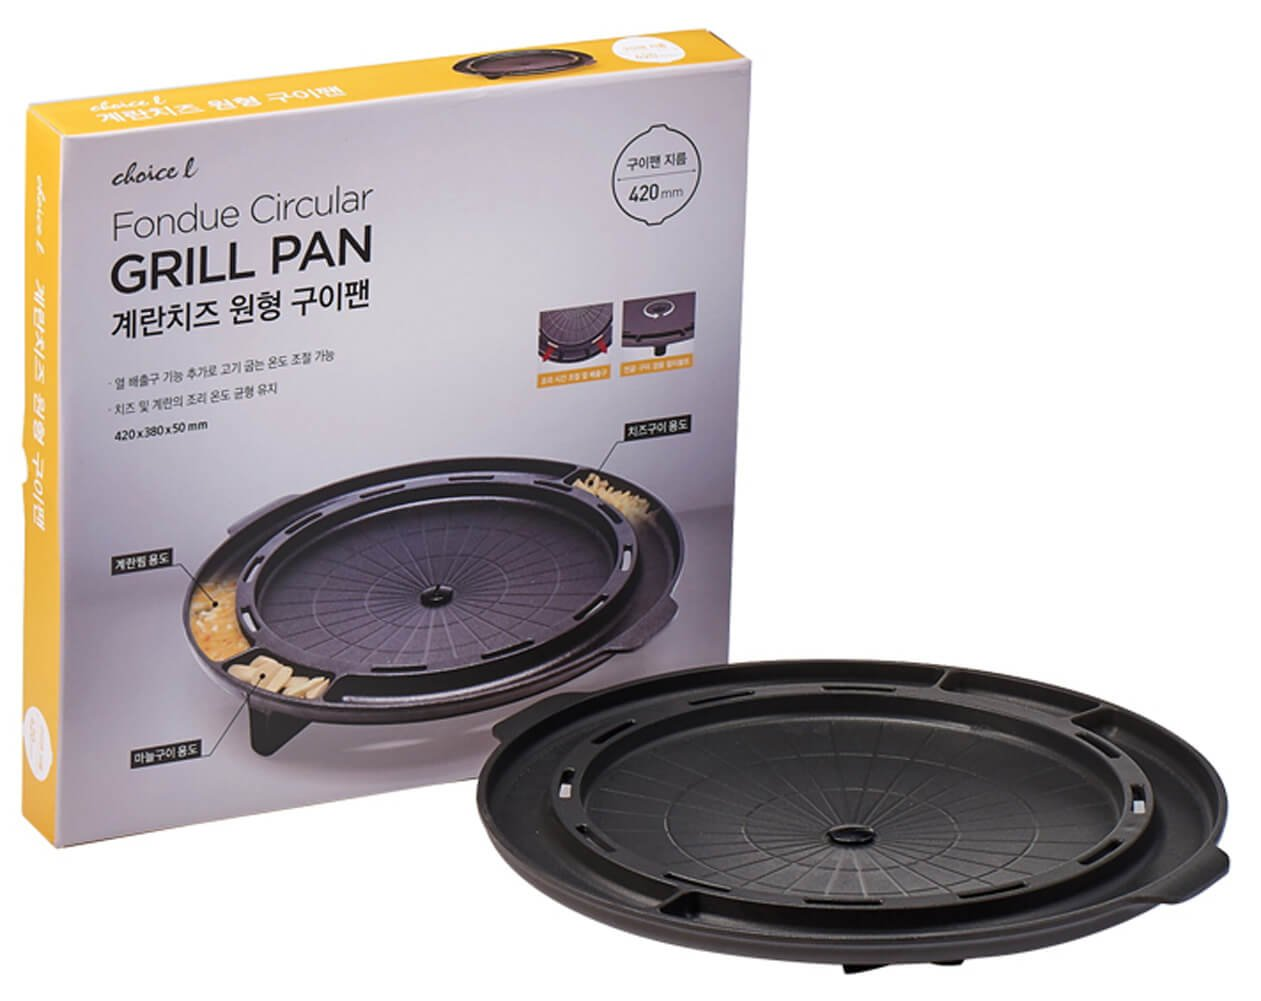 ChoiceL Egg Cheese Round Multi-roasting Pan Nabe Fryer Pork belly home party